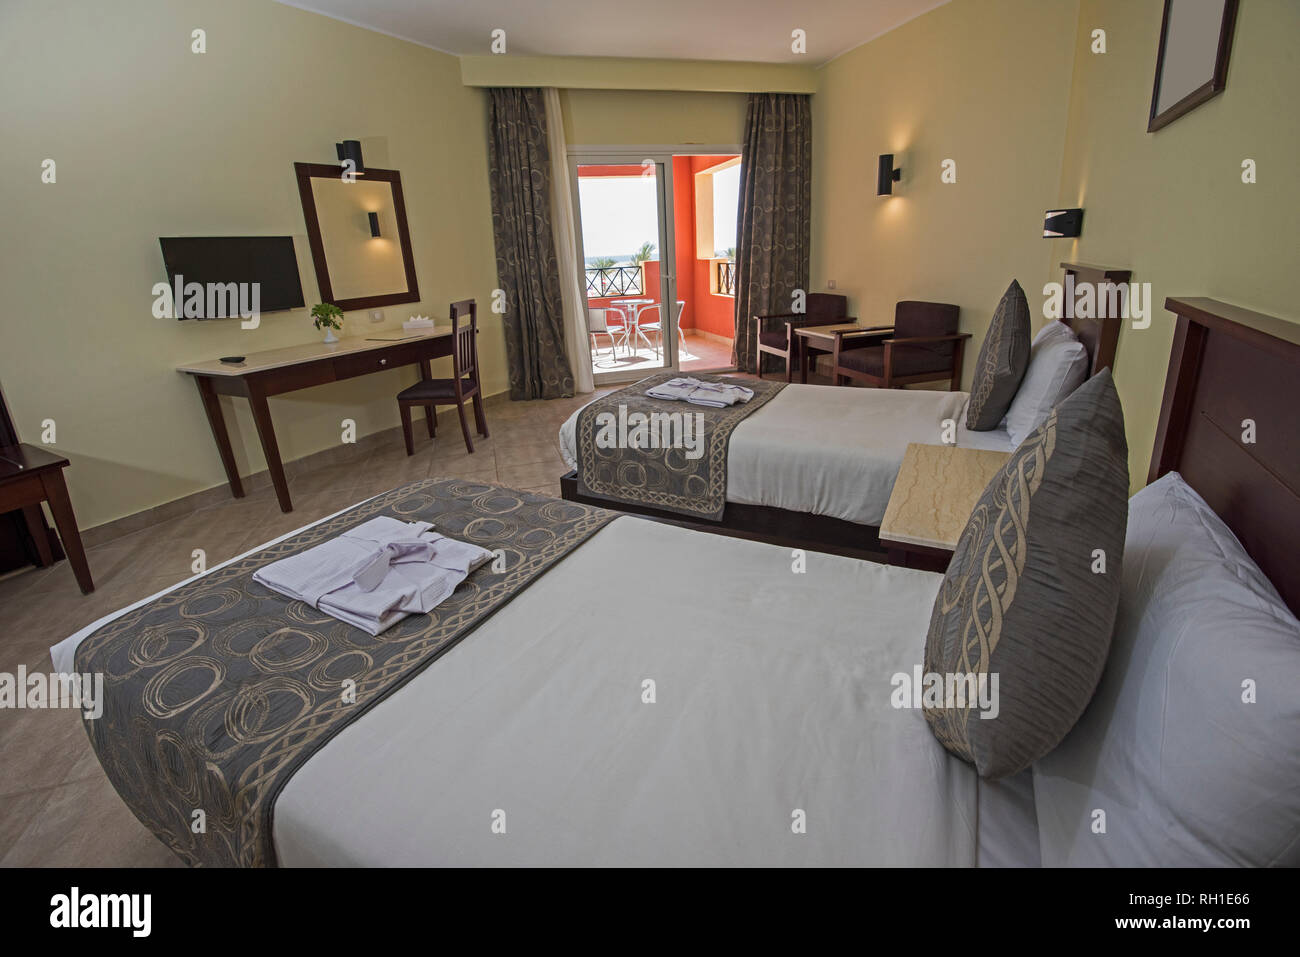 Twin Beds In A Luxury Hotel Resort Room With Curtains And Balcony Door Stock Photo Alamy